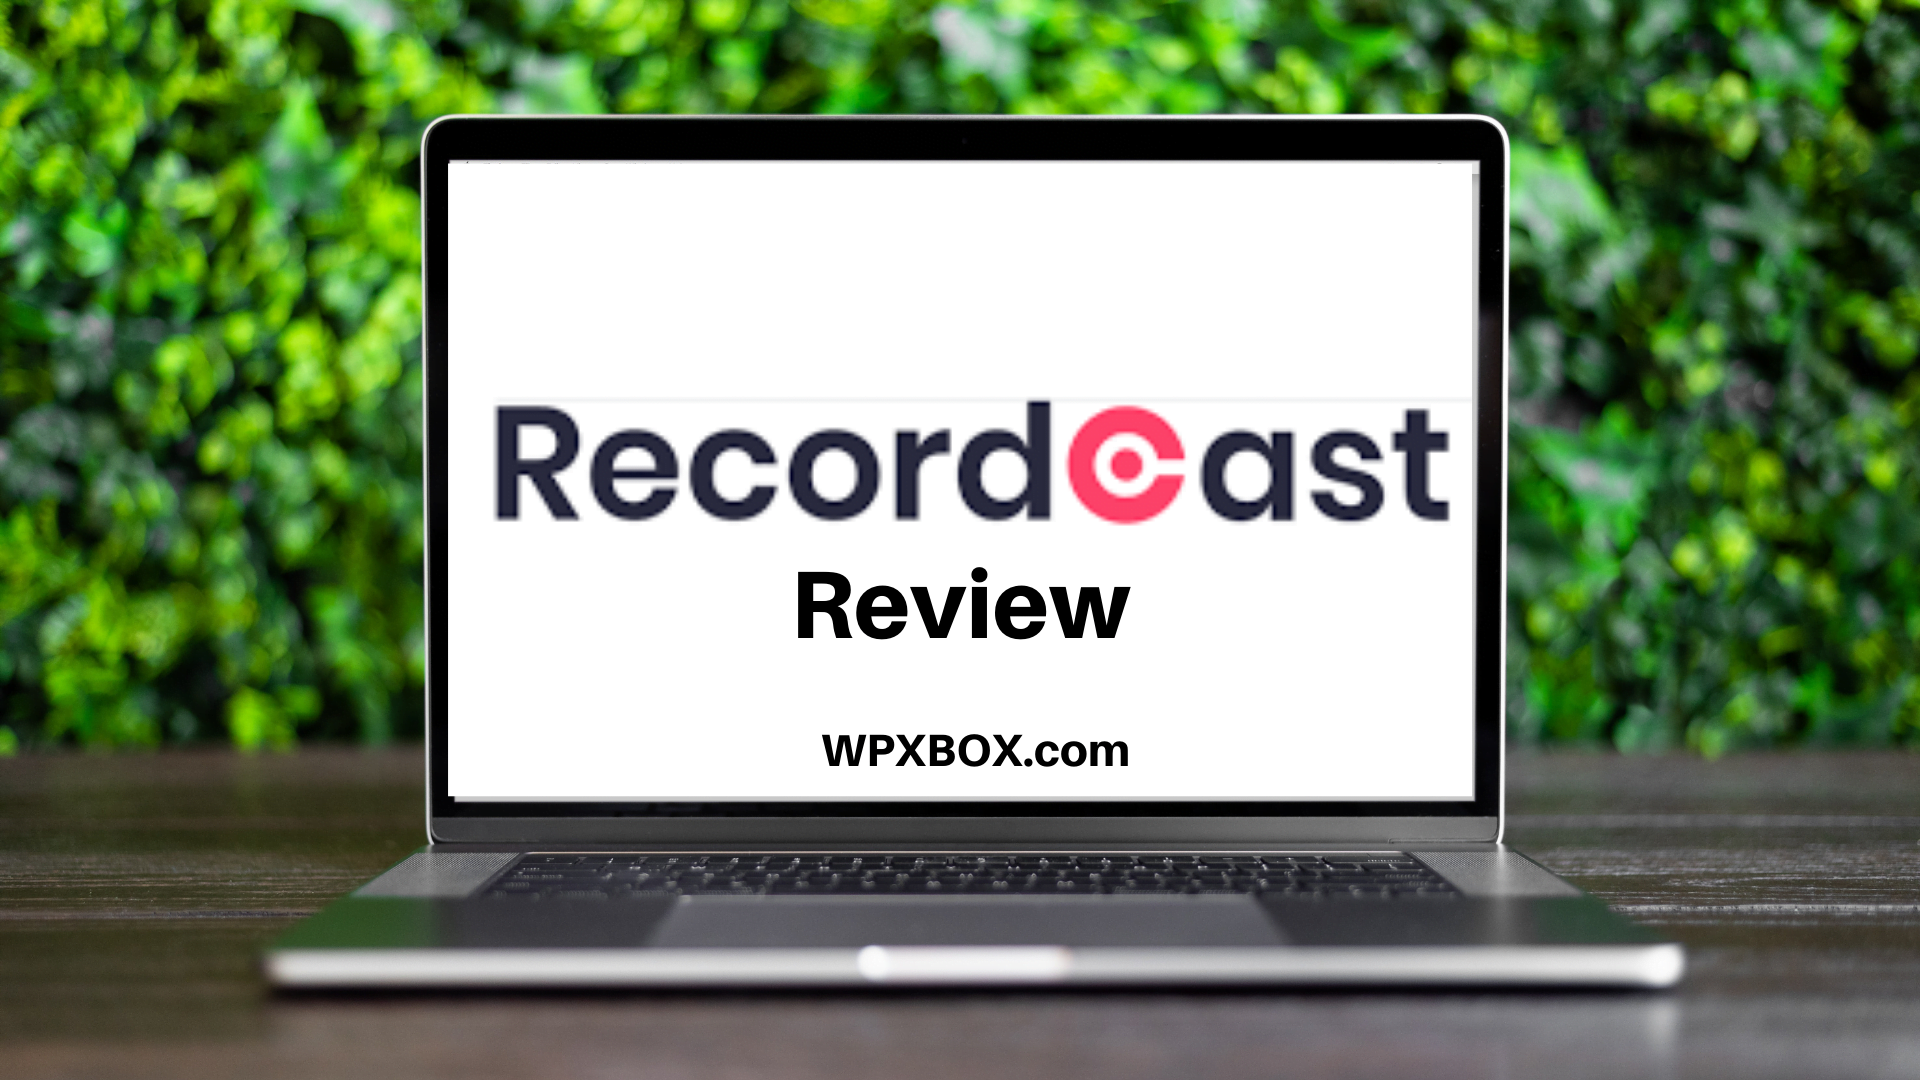 RecordCast Review: Best Online Screen Recorder?